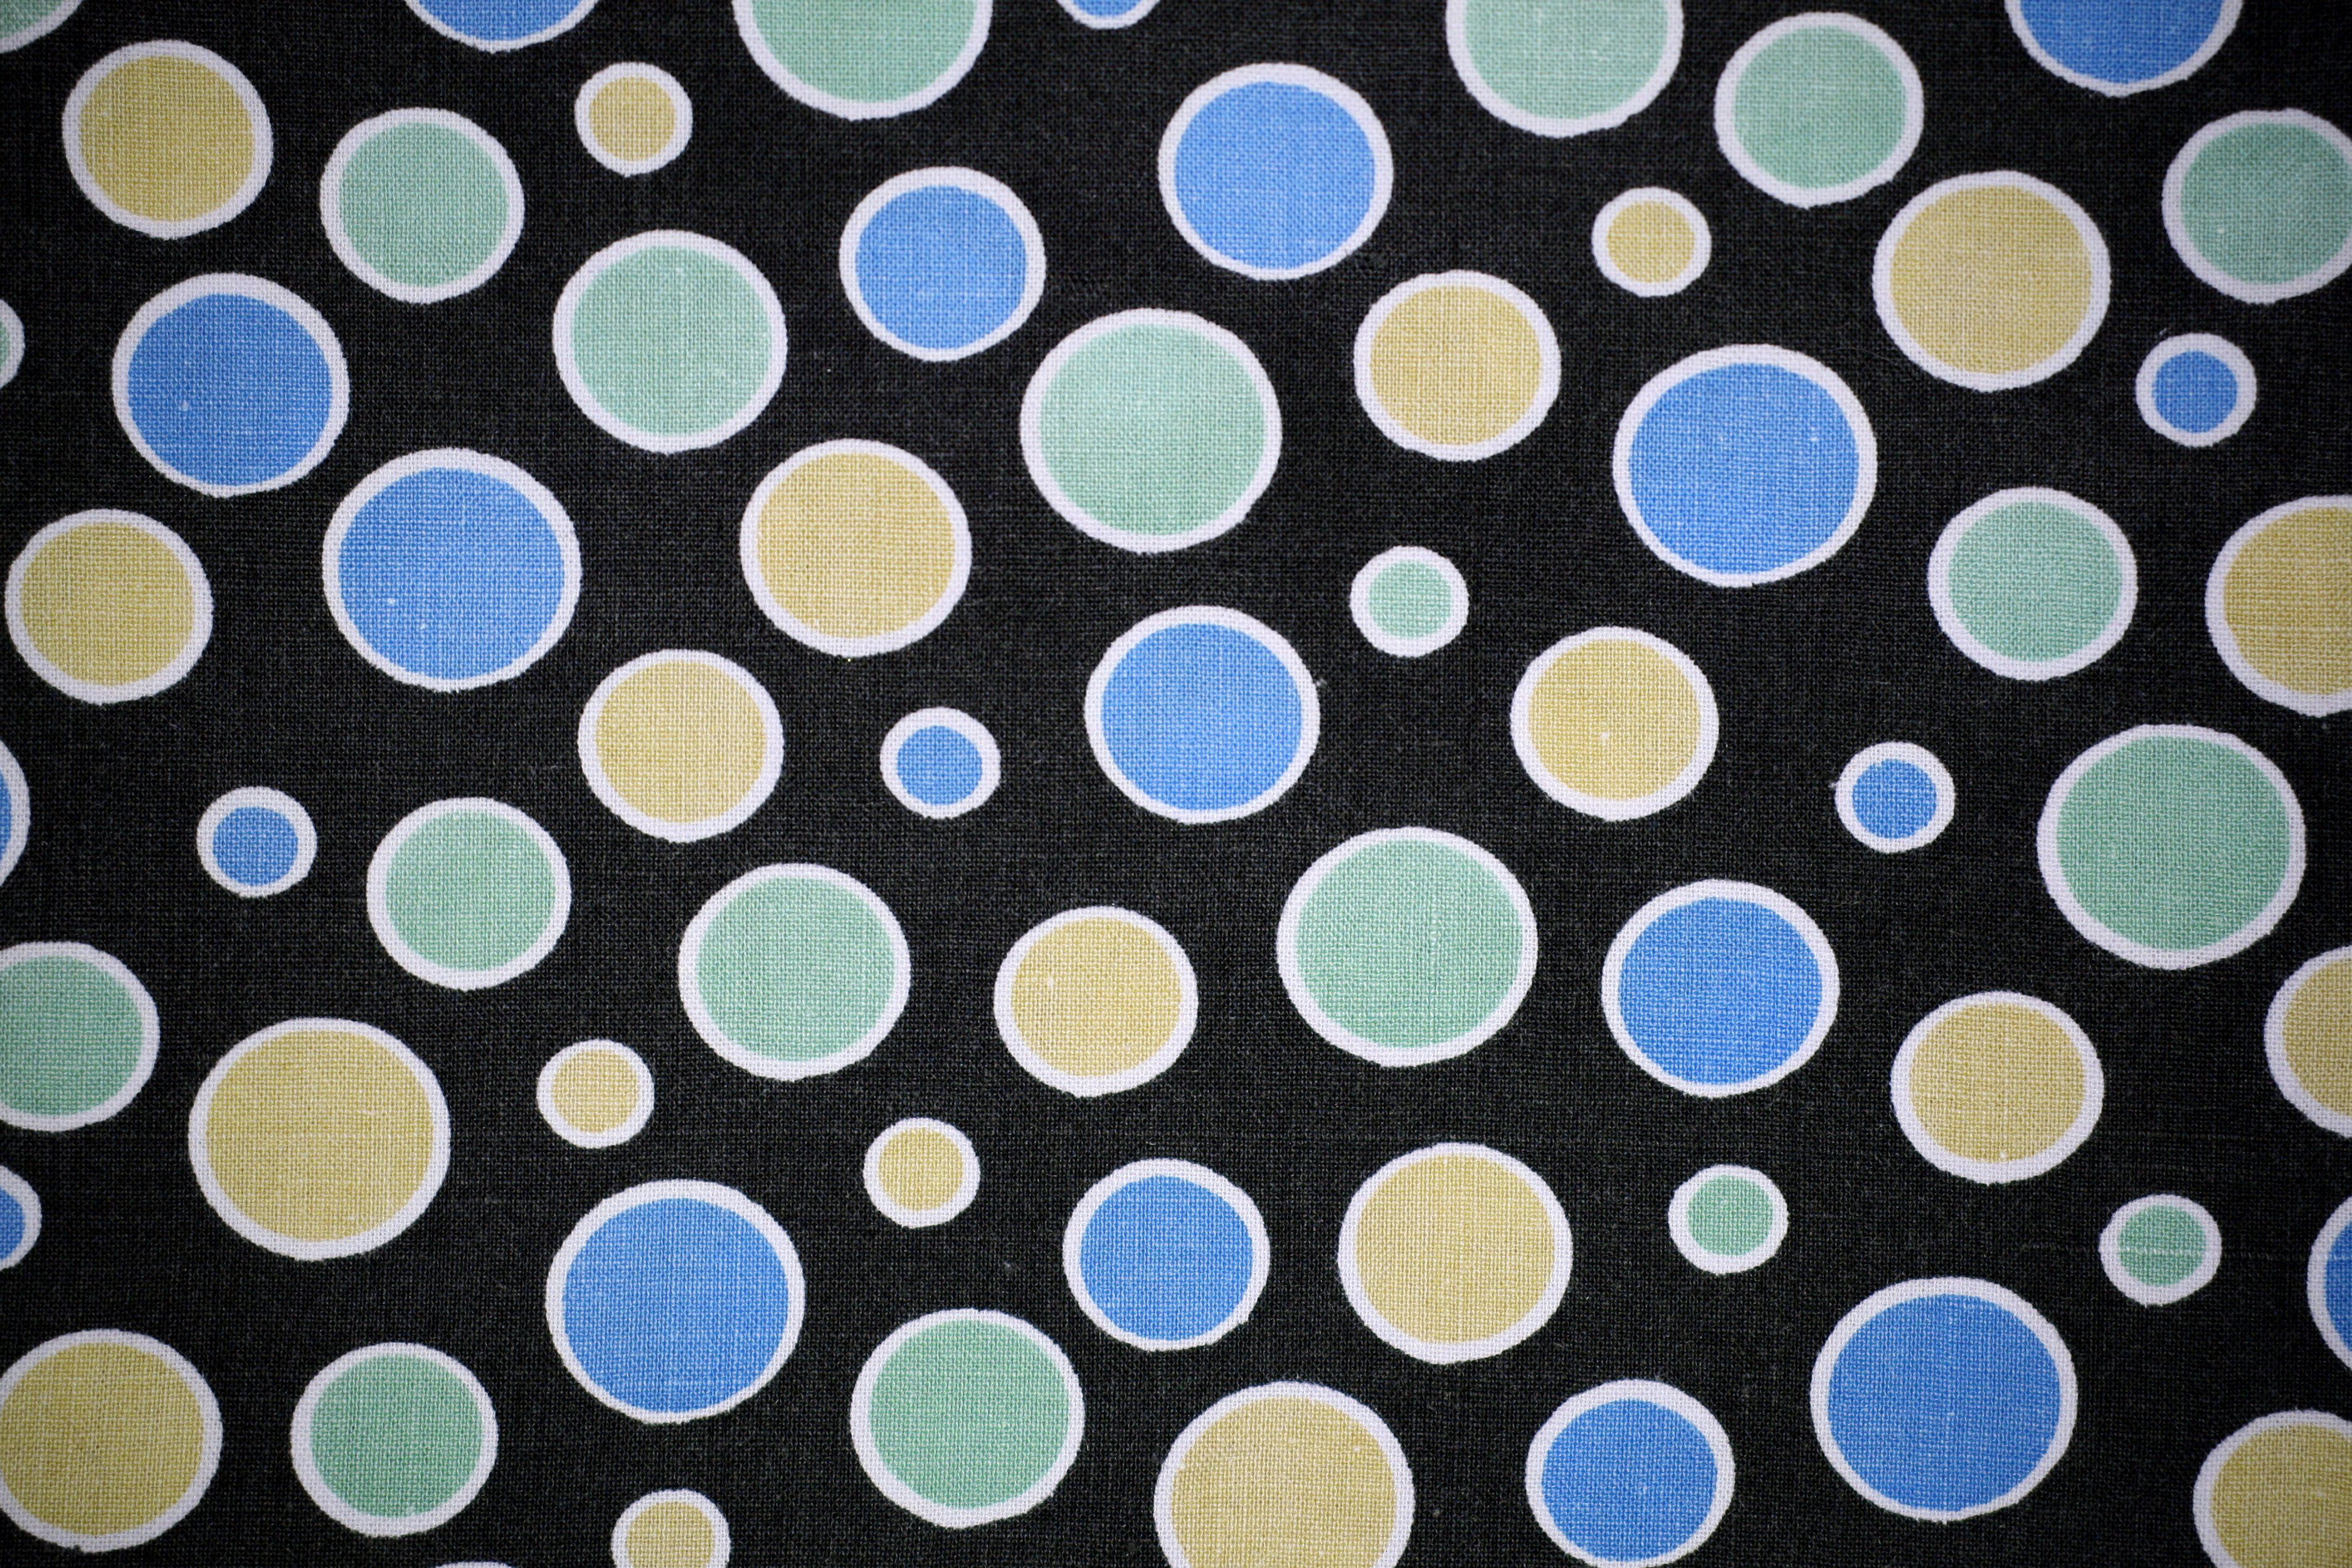 Black Fabric with Blue, Green and Yellow Dots Texture Picture ...